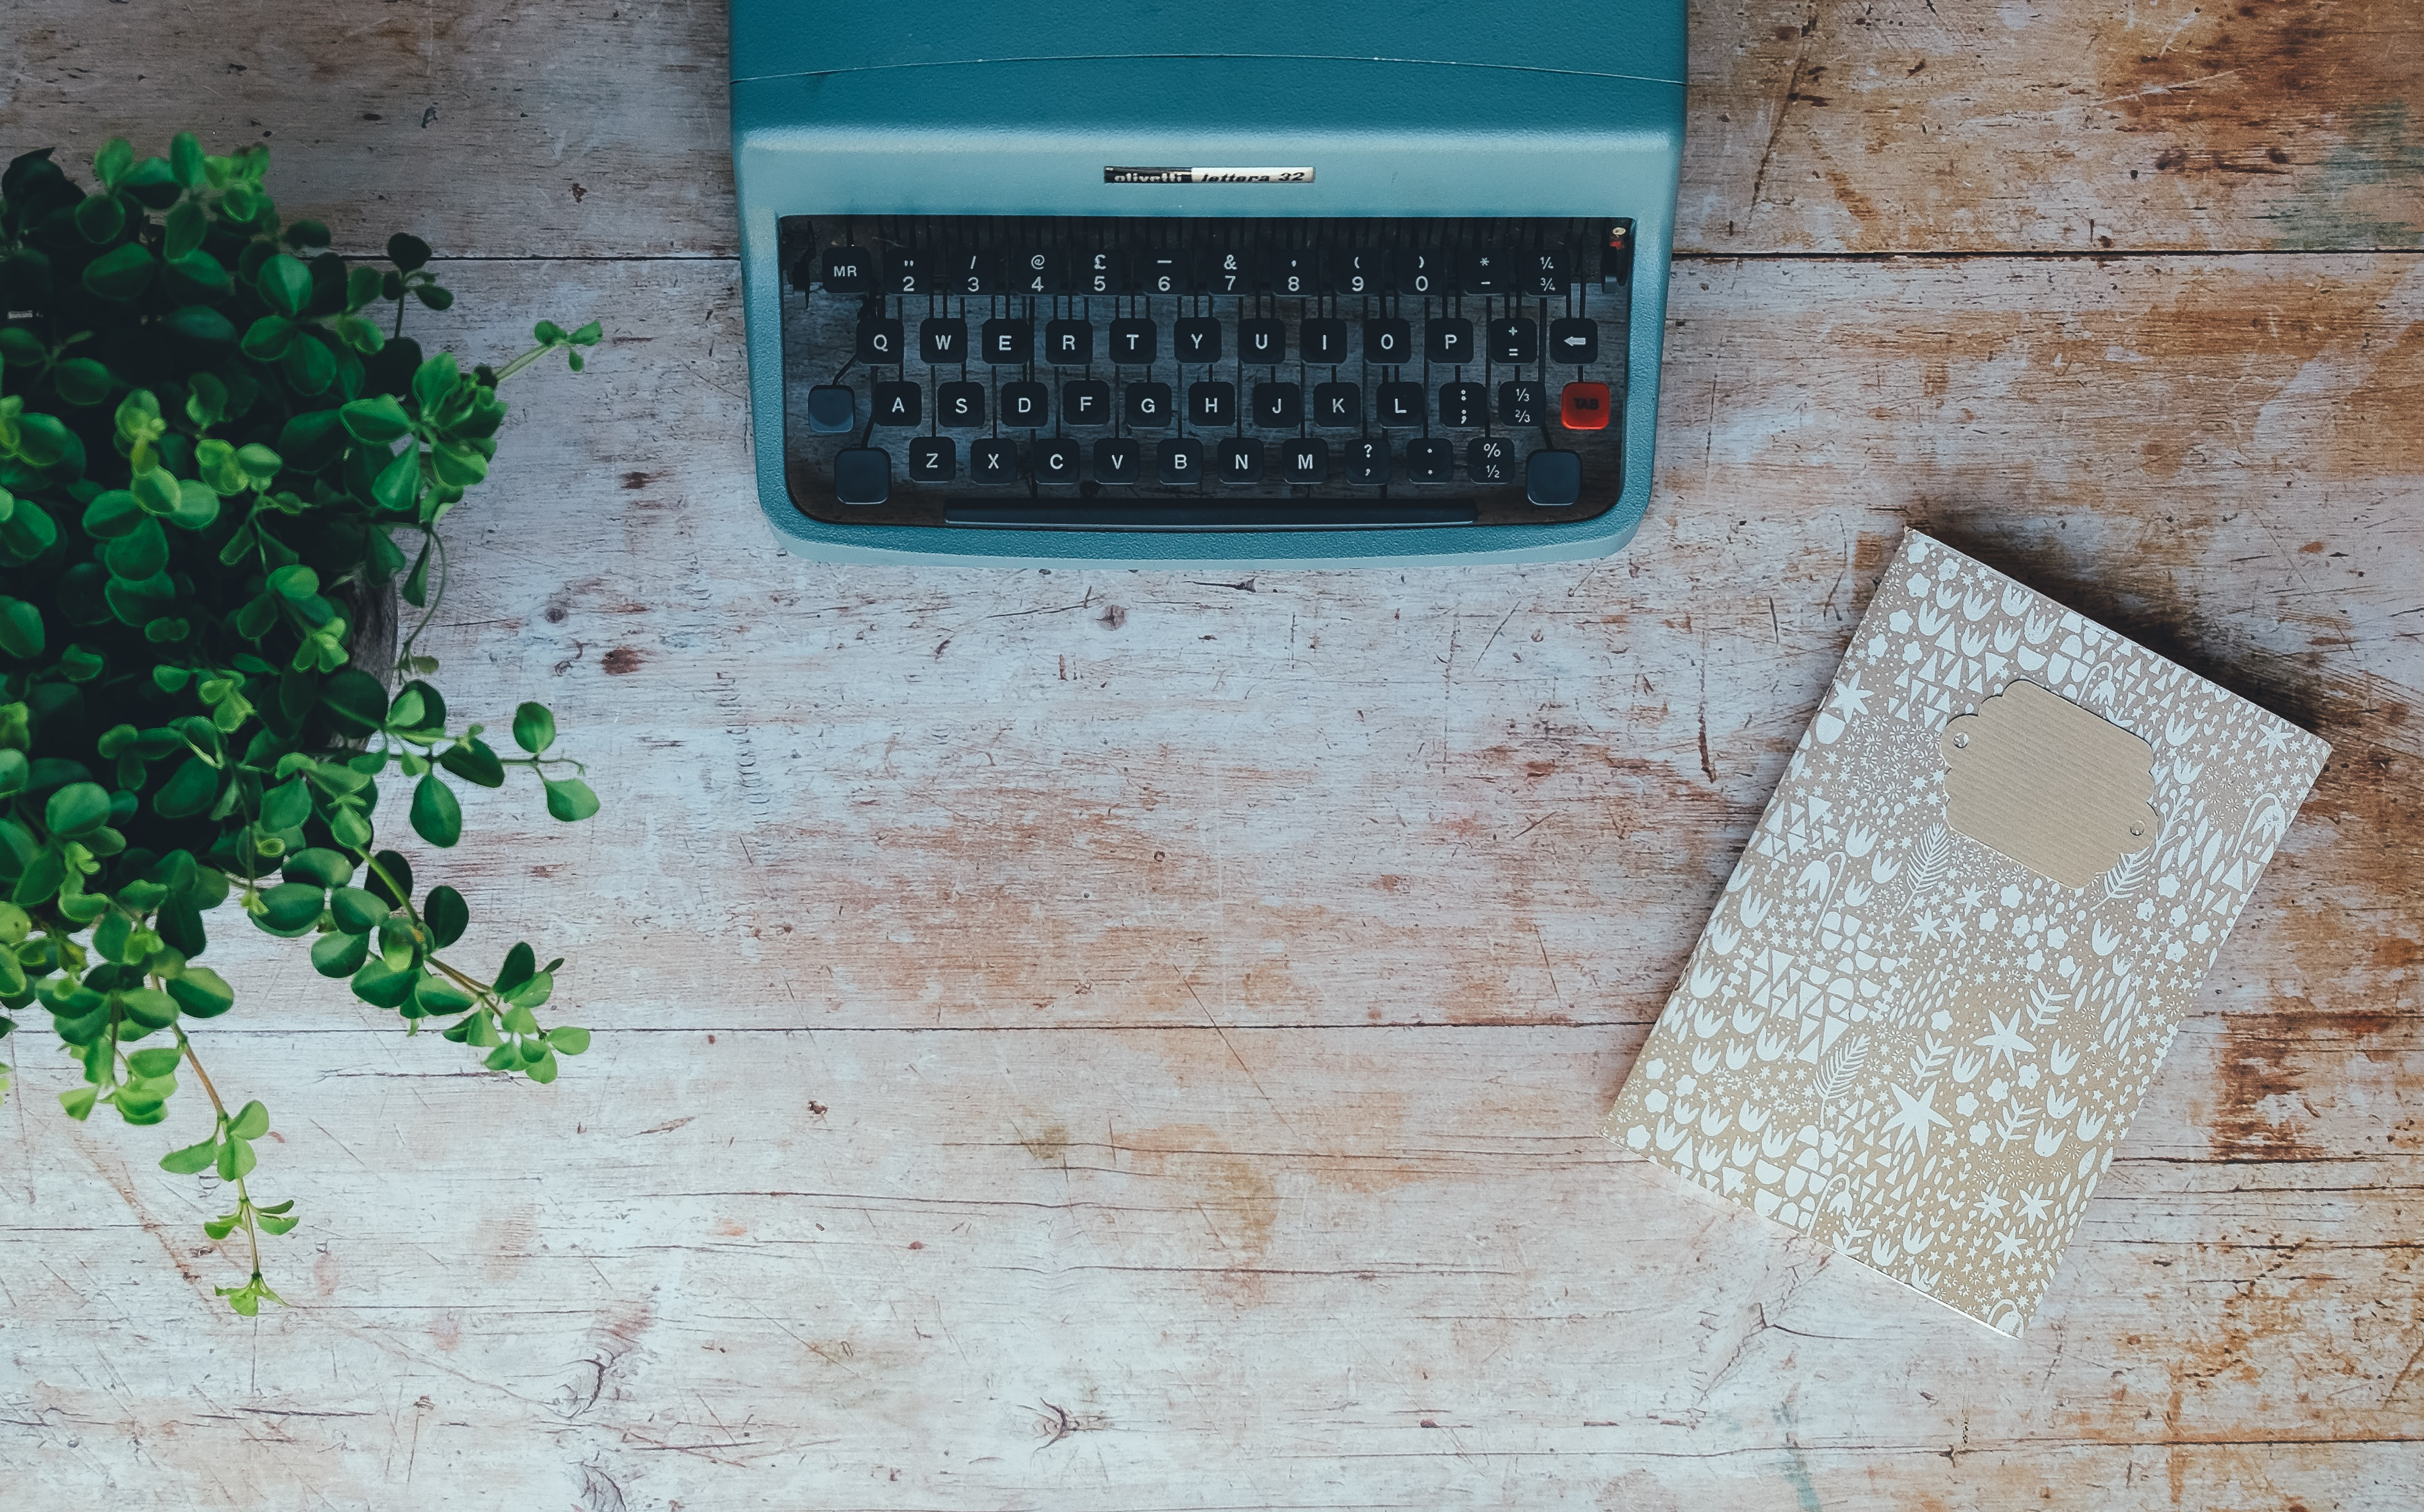 Overhead shot of a turquoise typewriter next to a beige notebook and a plant